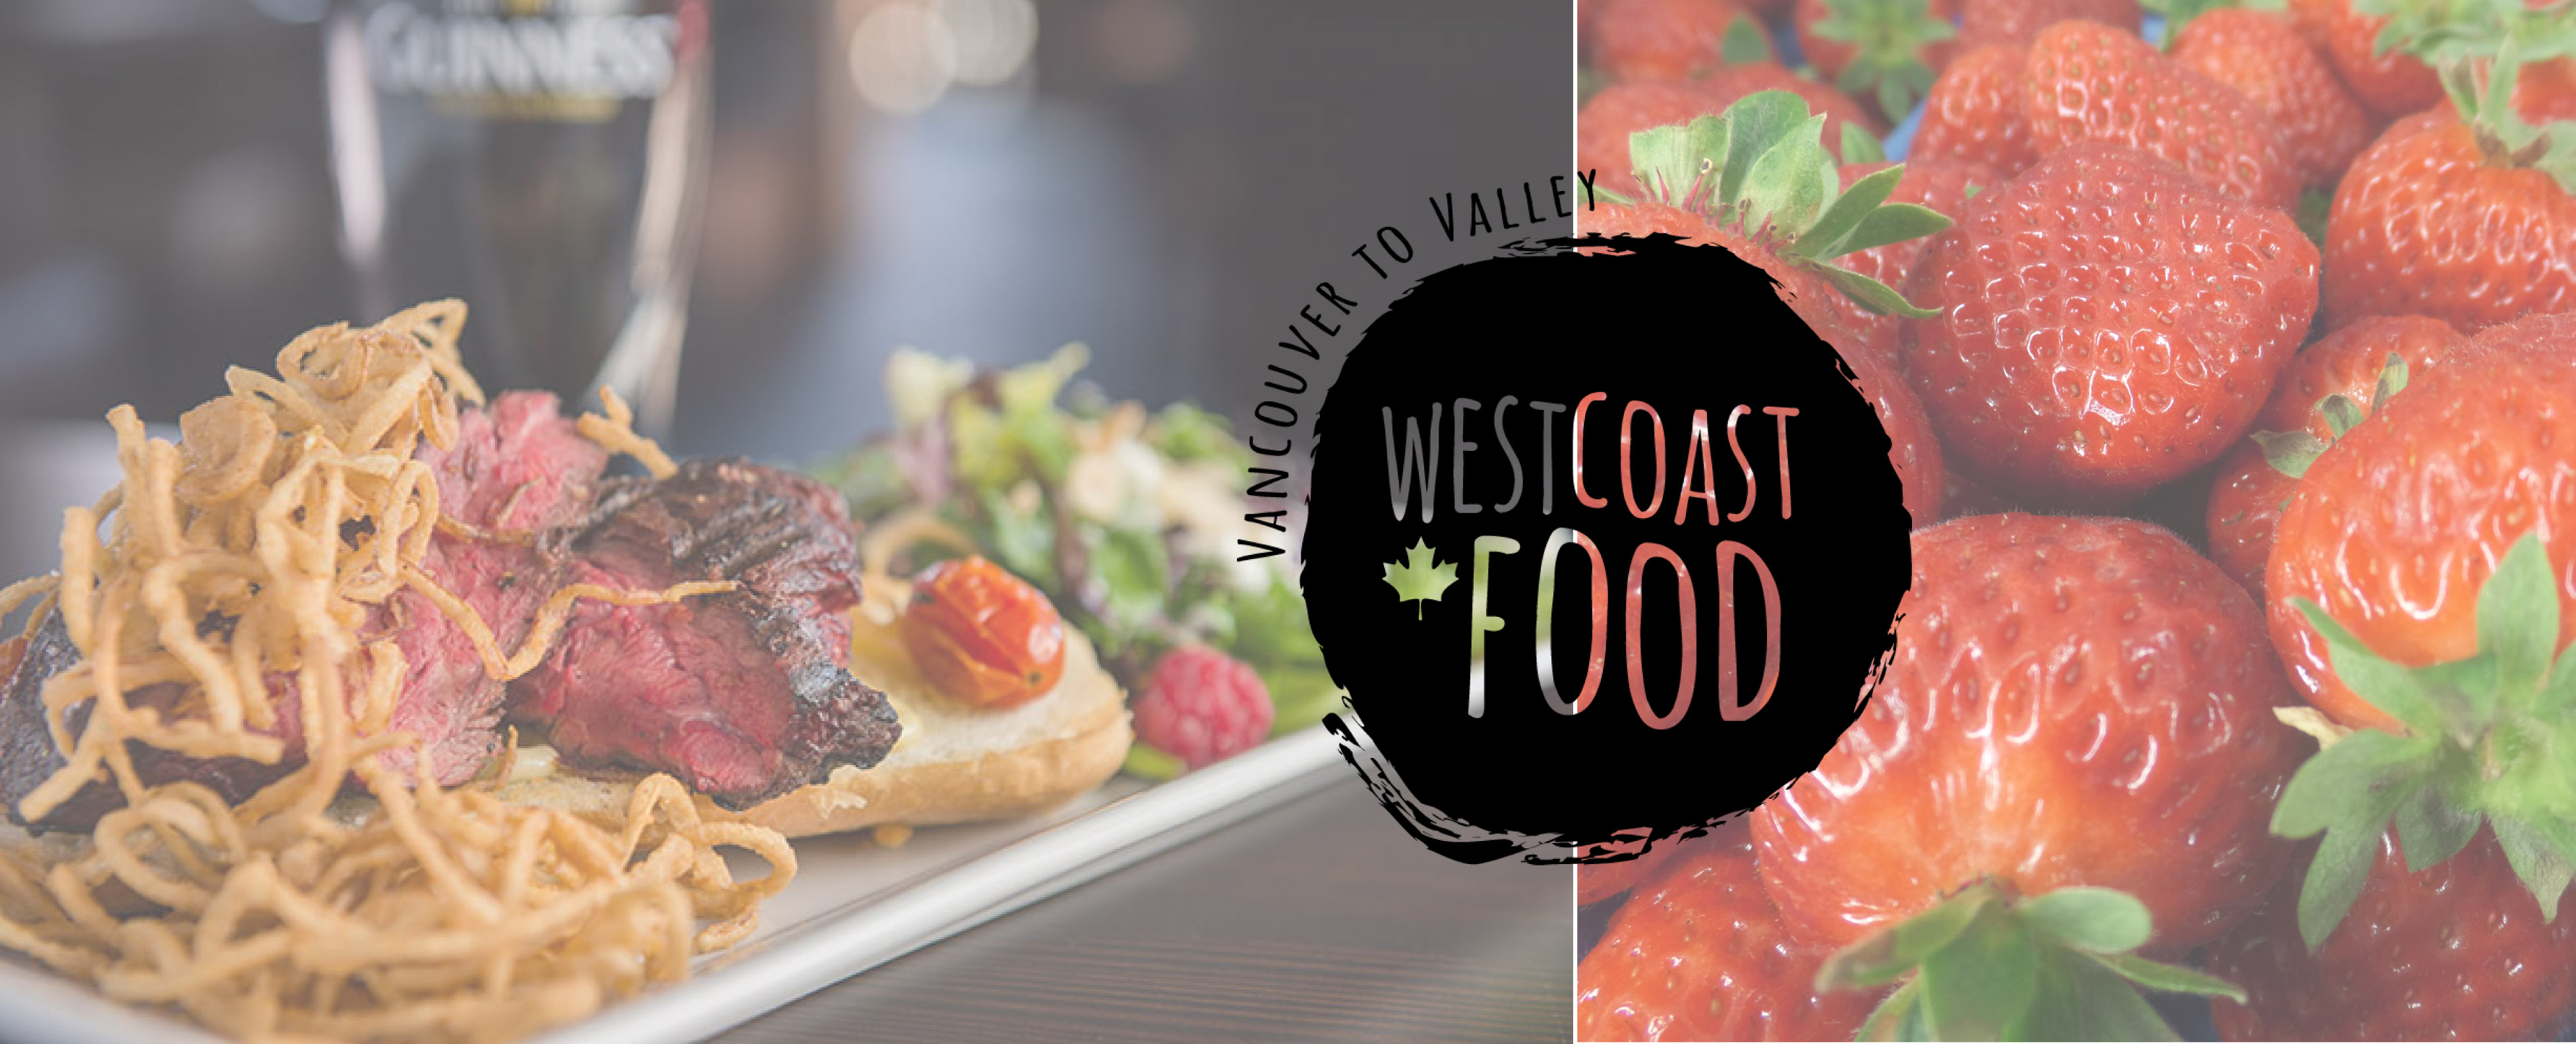 West Coast Food - Vancouver to Valley